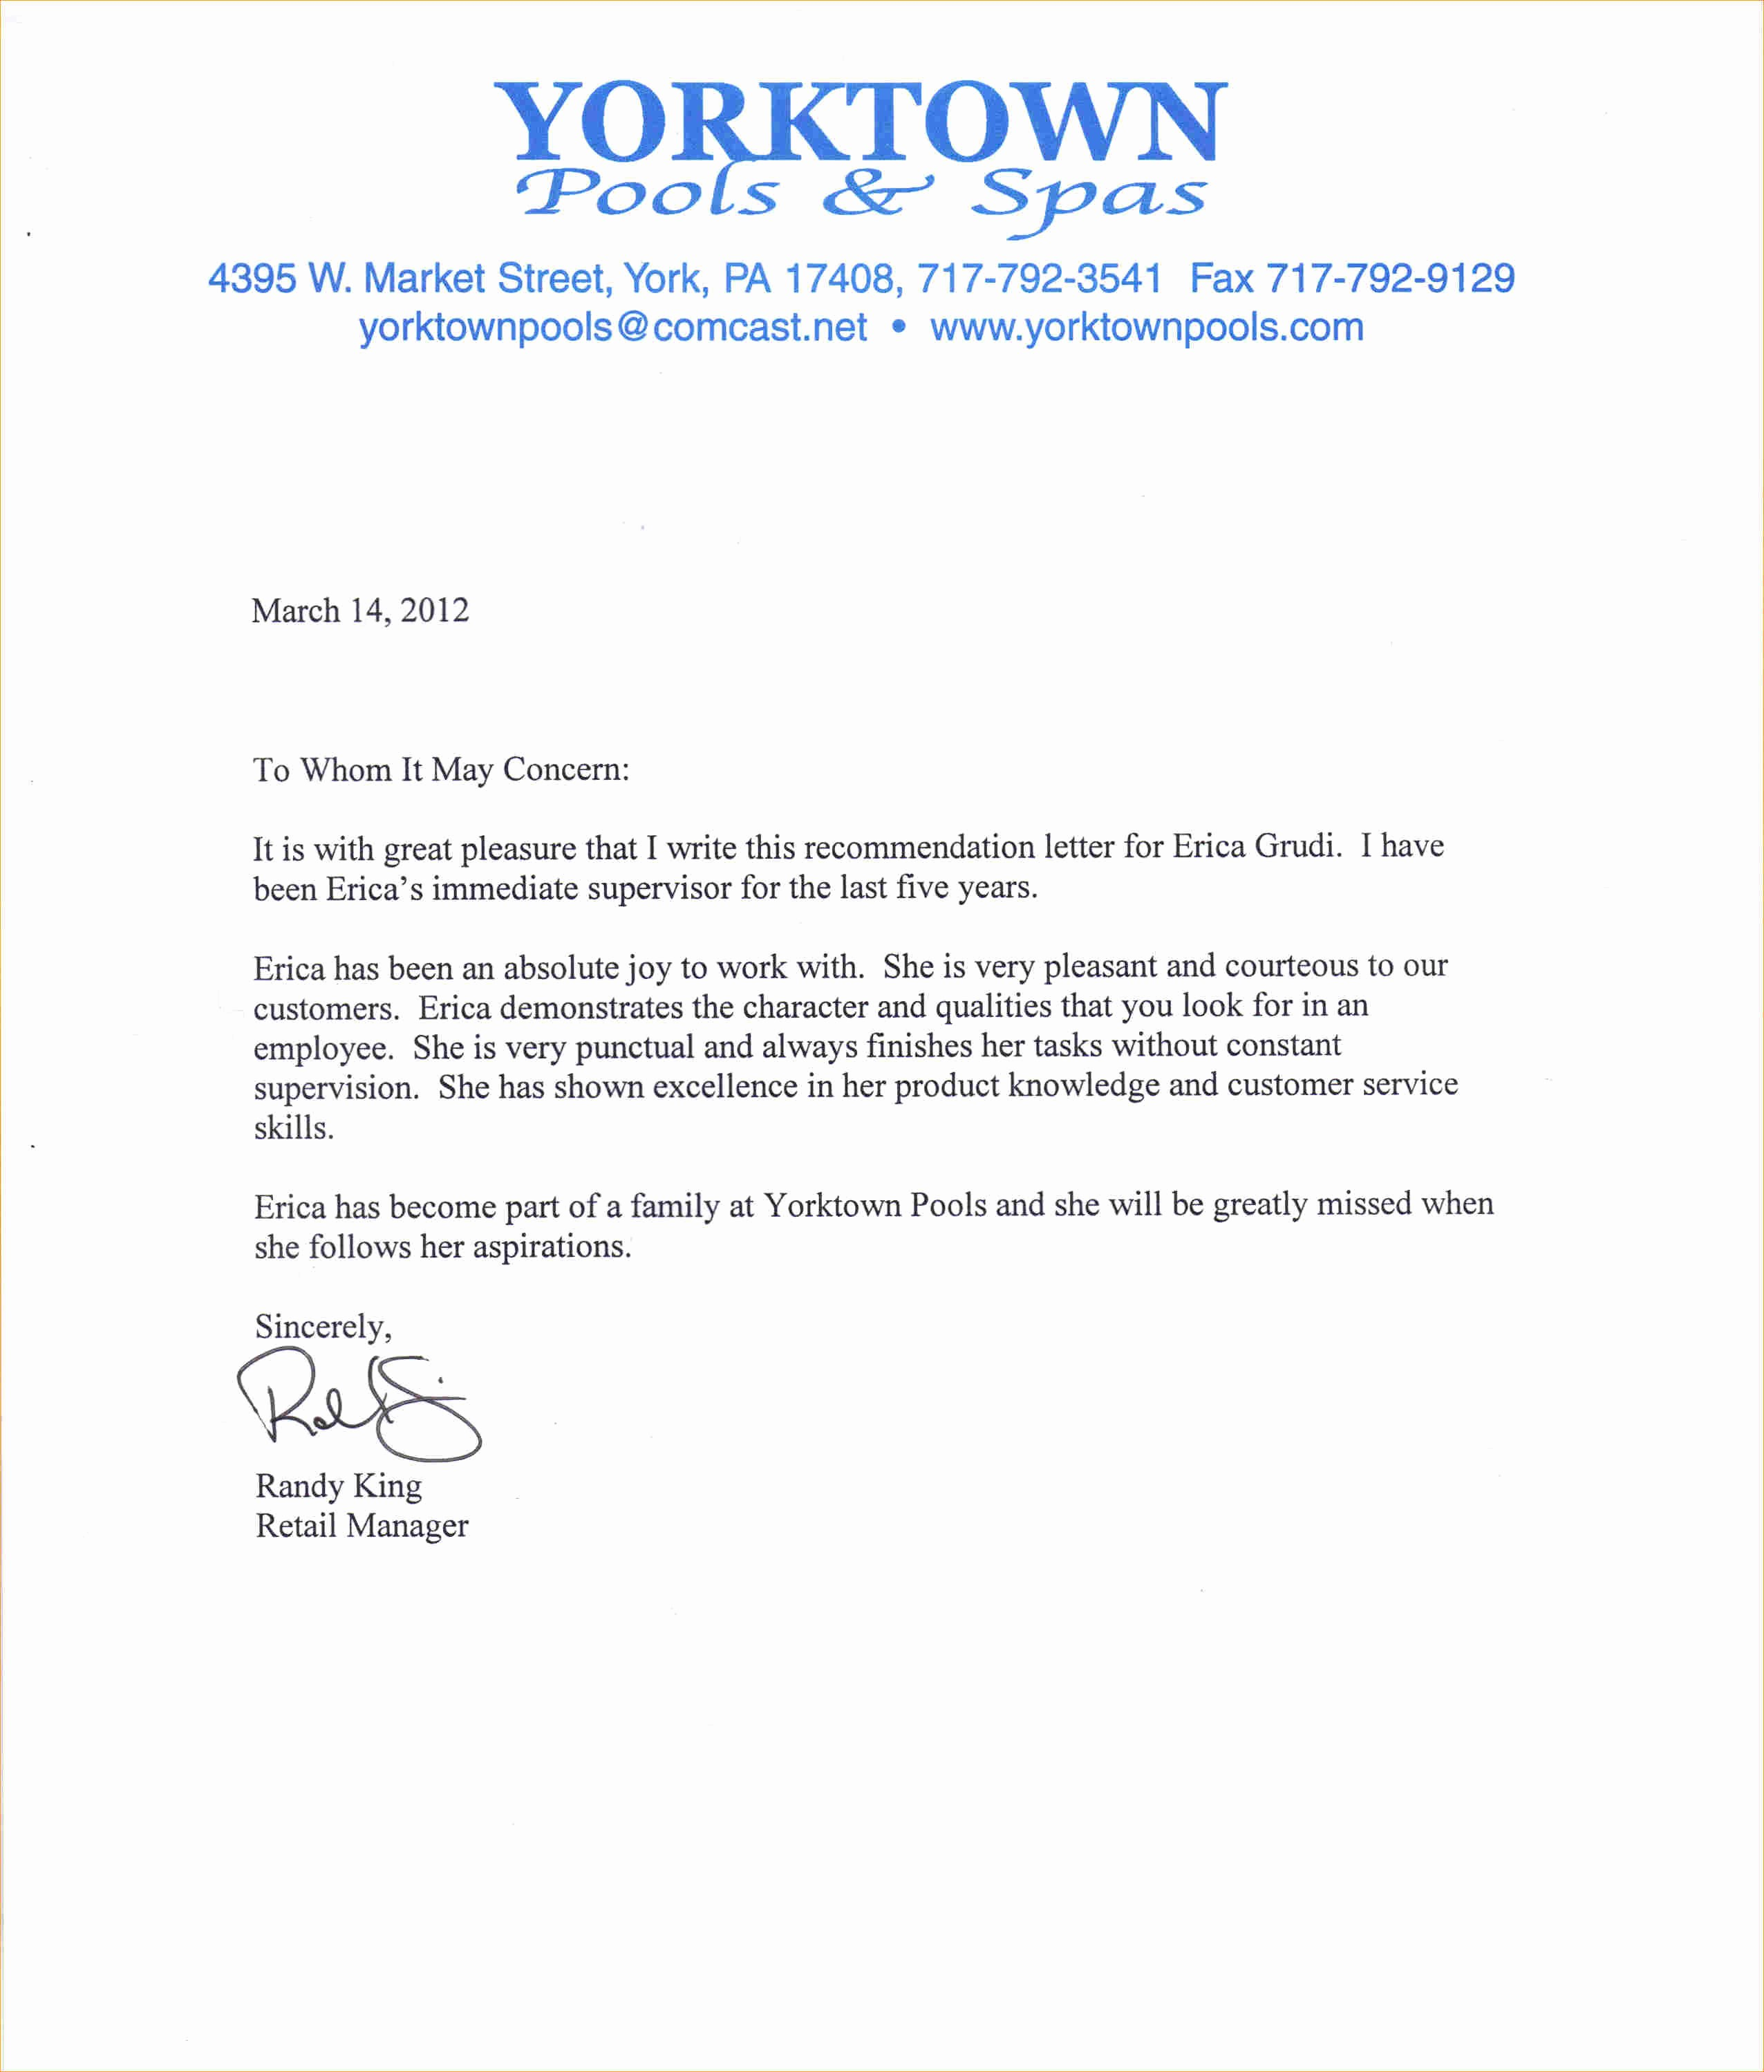 Sample Professional Letter Of Recommendation New A Professional Letter Of Re Mendation Business